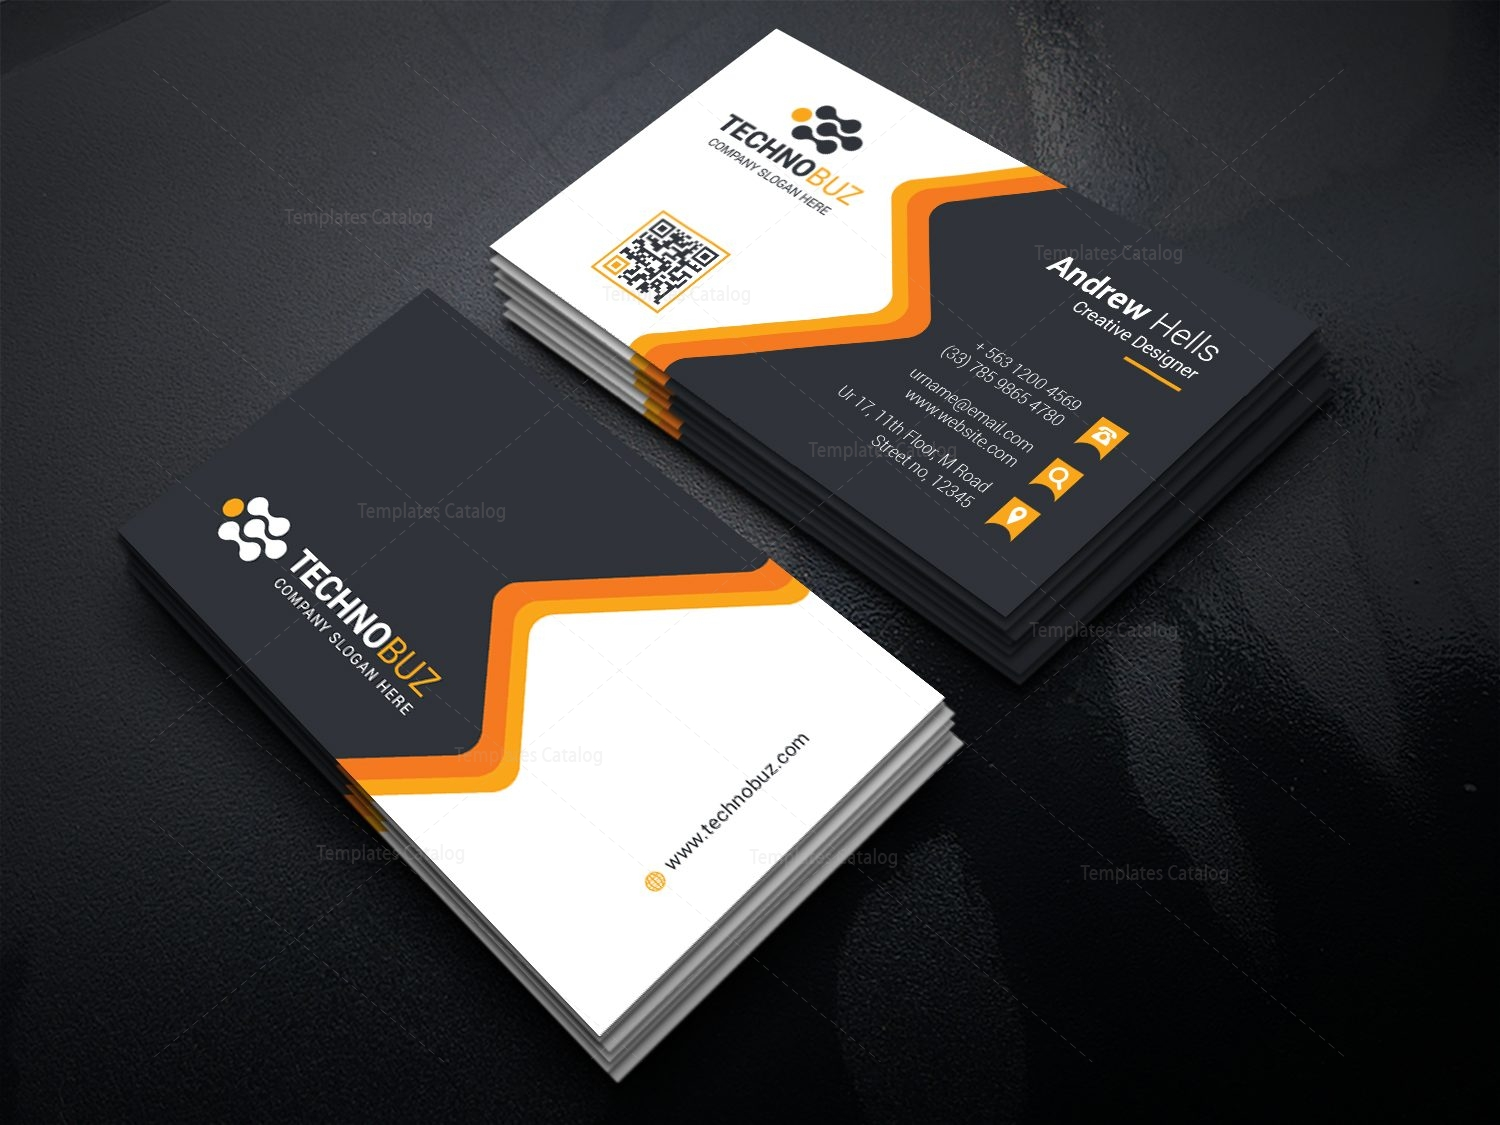 Fancy premium business card template 000741 template catalog fancy premium business card template 3 wajeb